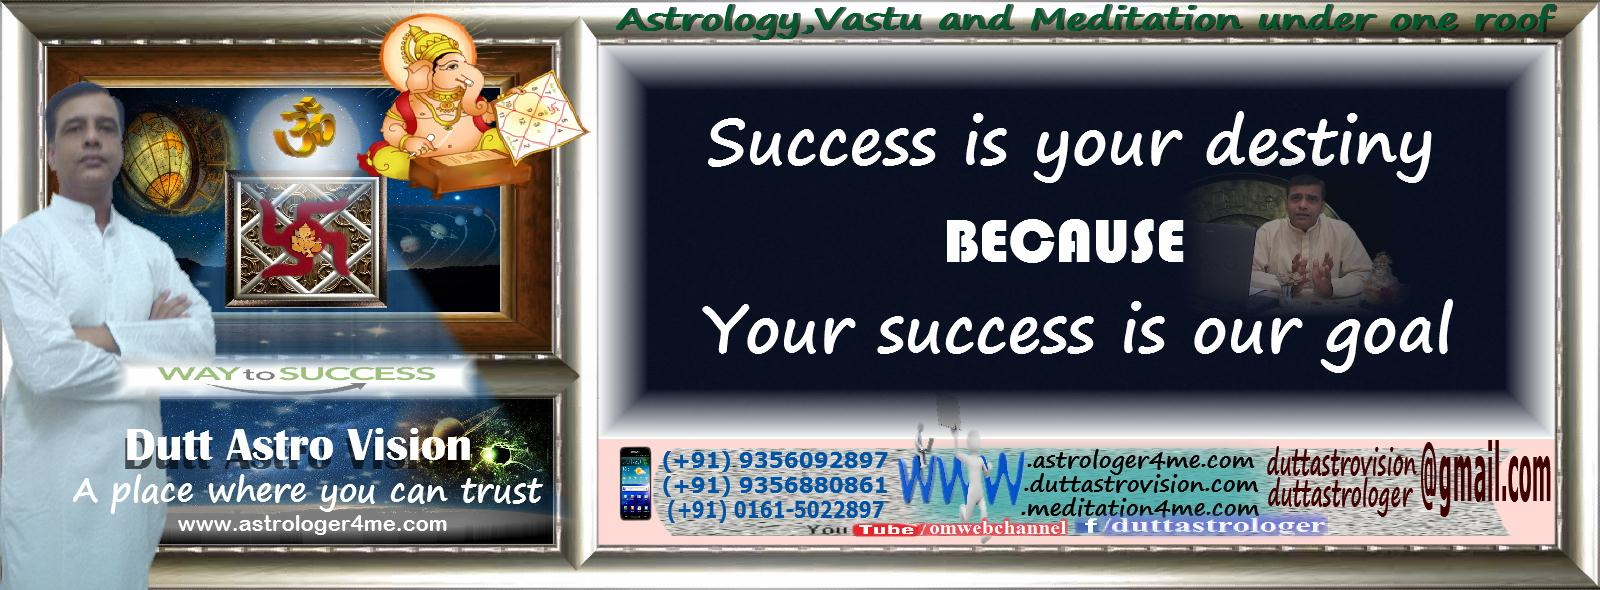 Astrologer in Ludhiana | Dutt Astro Vision - A House of Complete Astrology and Vastu Solution